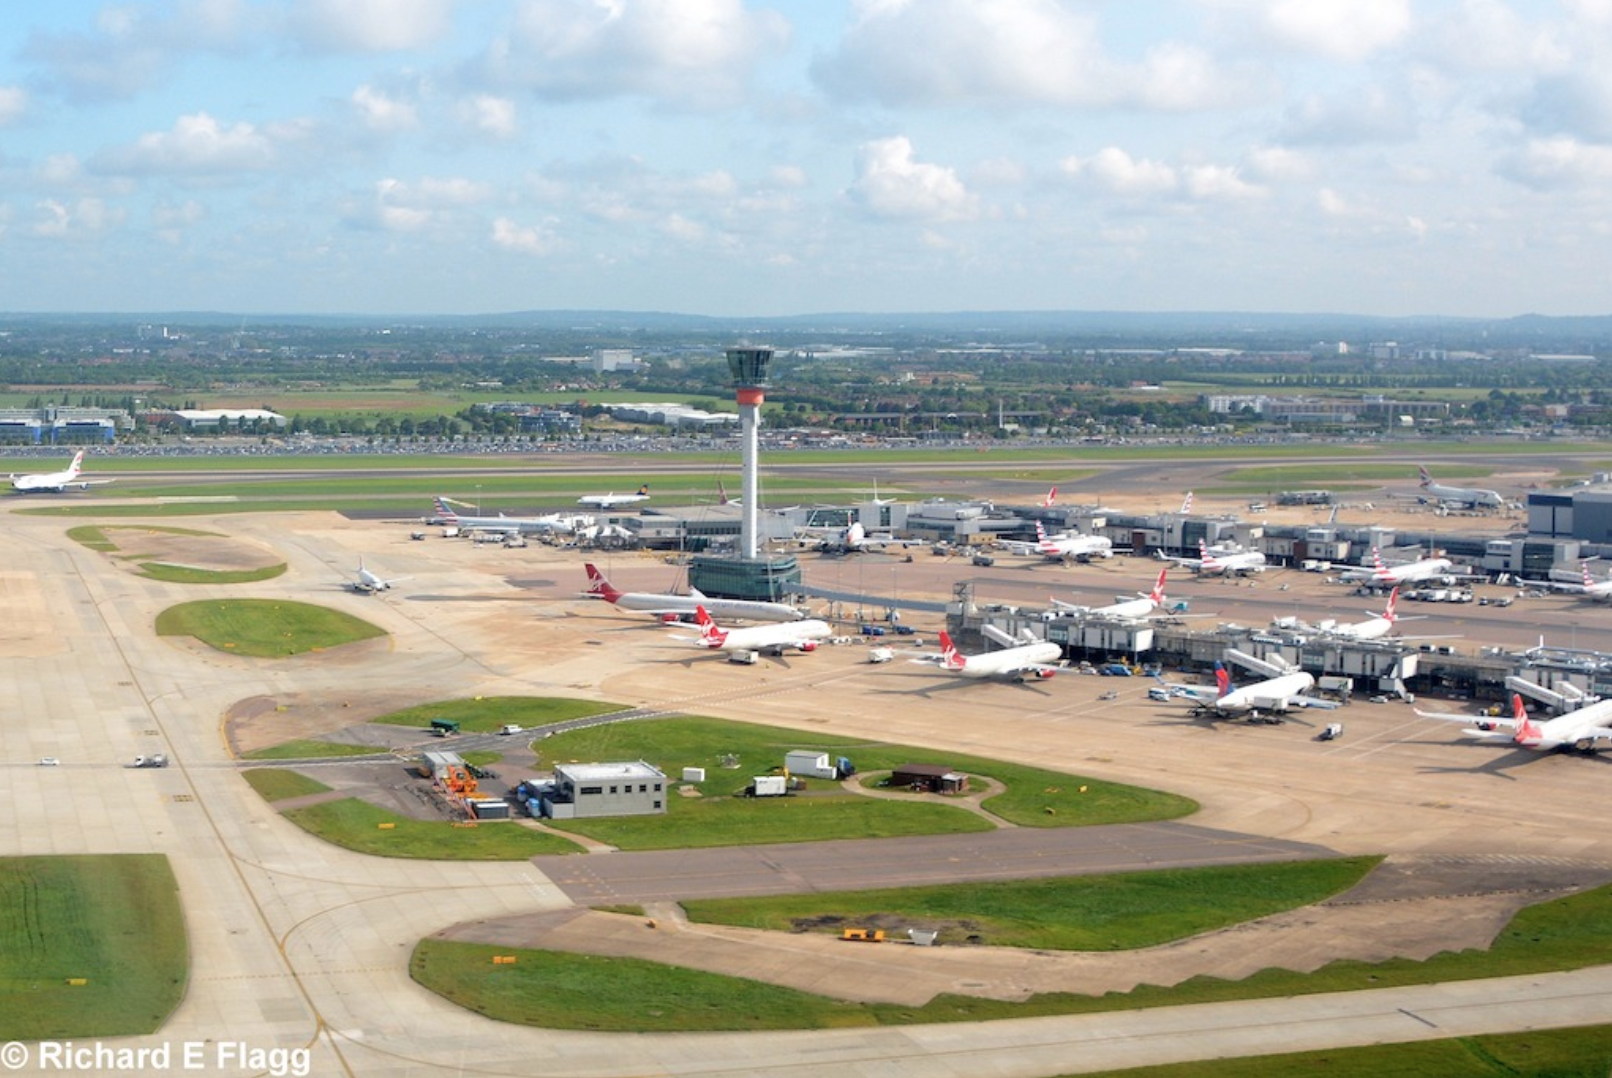 014Aerial View of Heathrow Airport - 22 May 2016.png